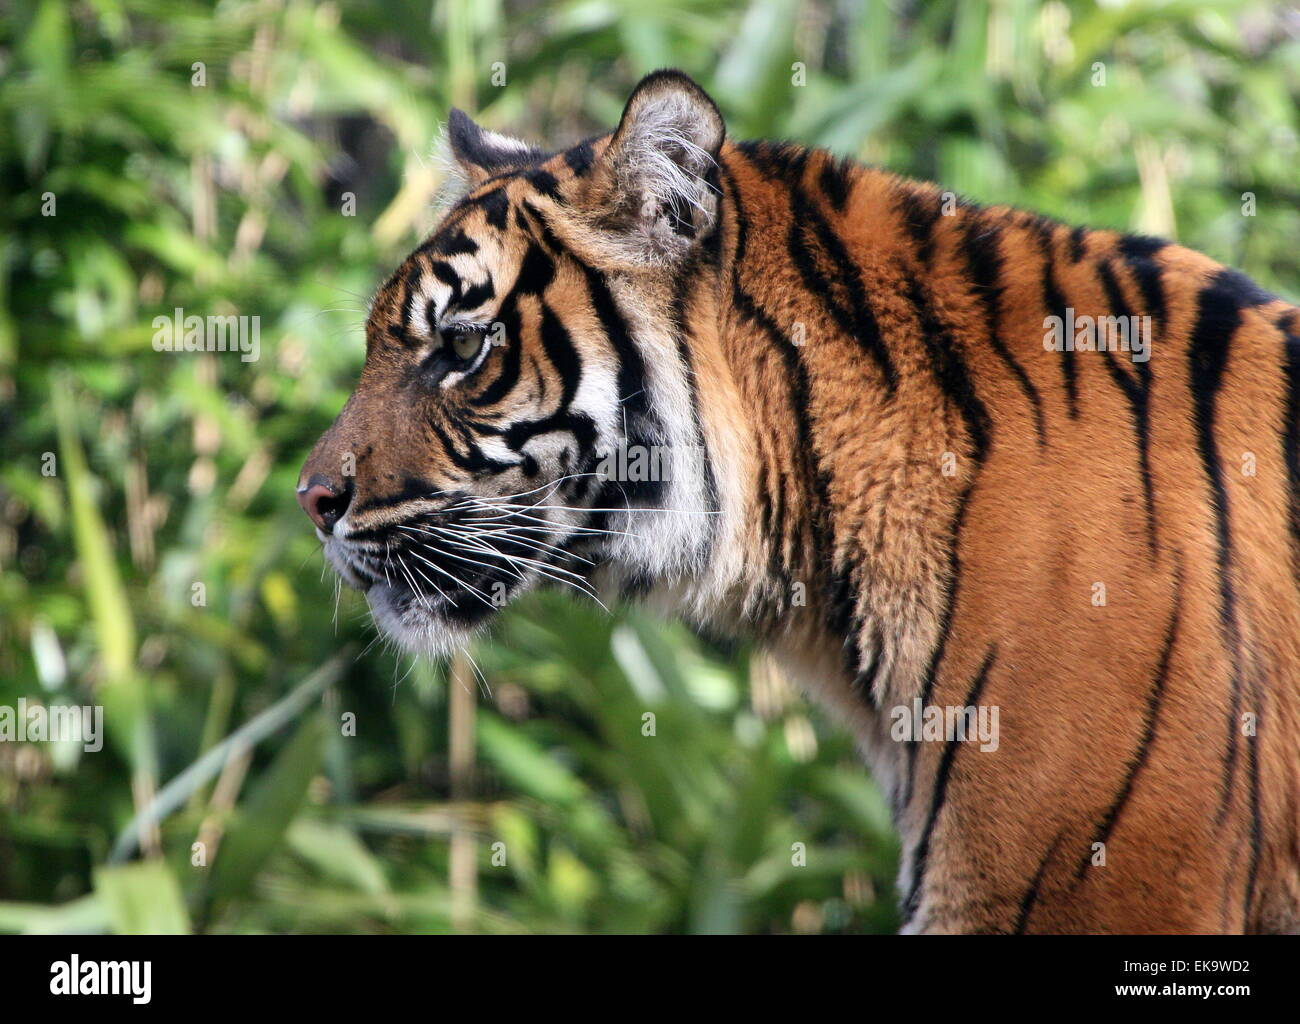 Female Sumatran tiger (Panthera tigris sumatrae) in profile portrait - Stock Image